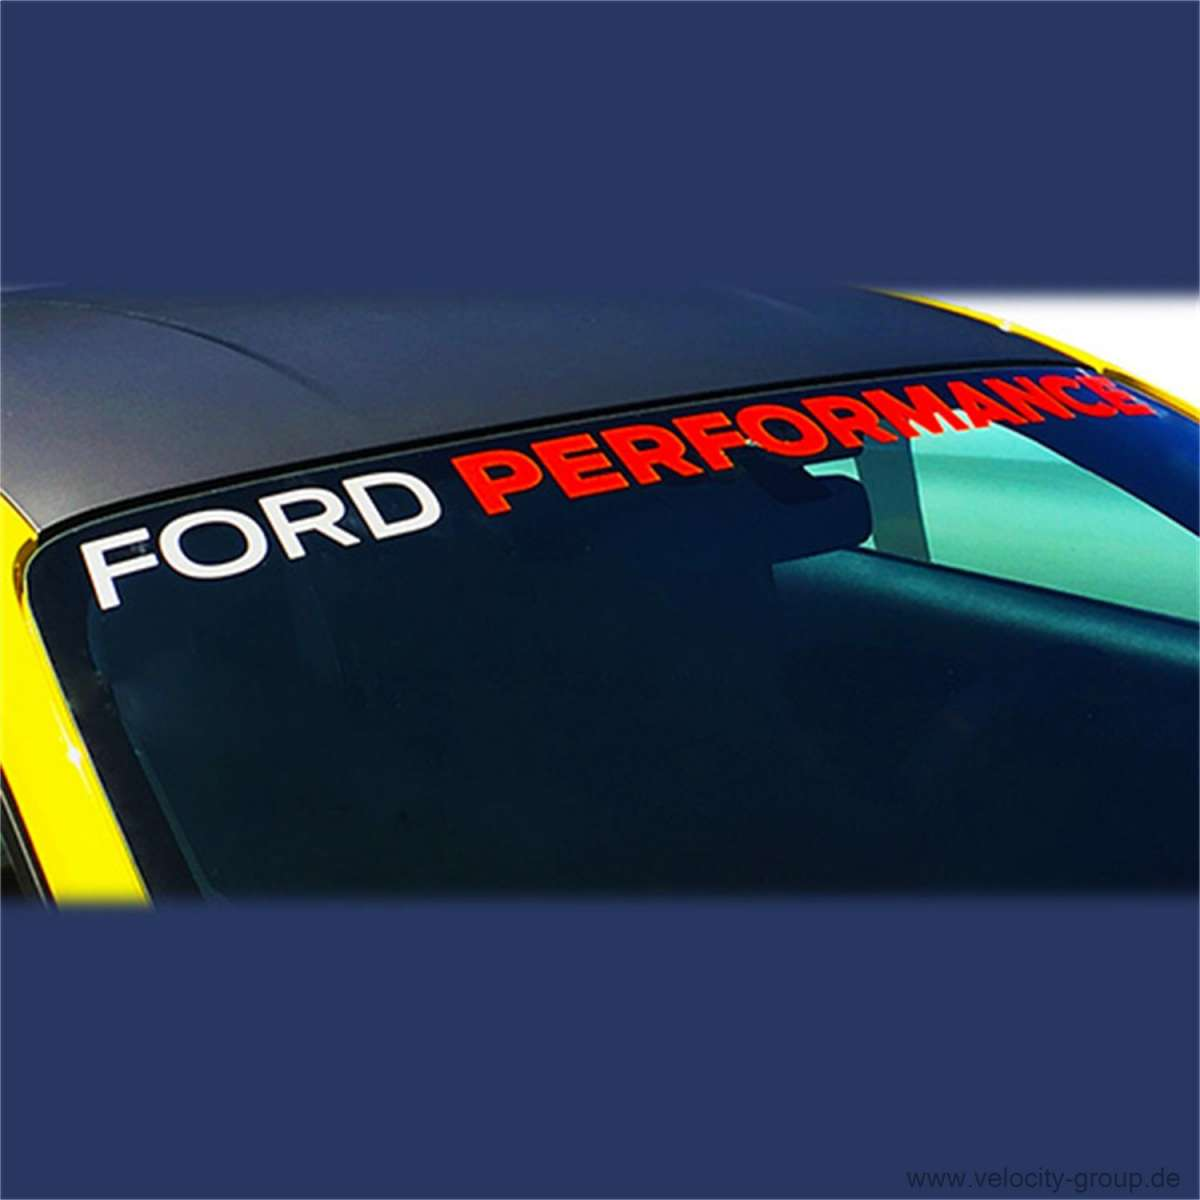 05 19 ford mustang exterior decal m 1820 mr rh velocity group de